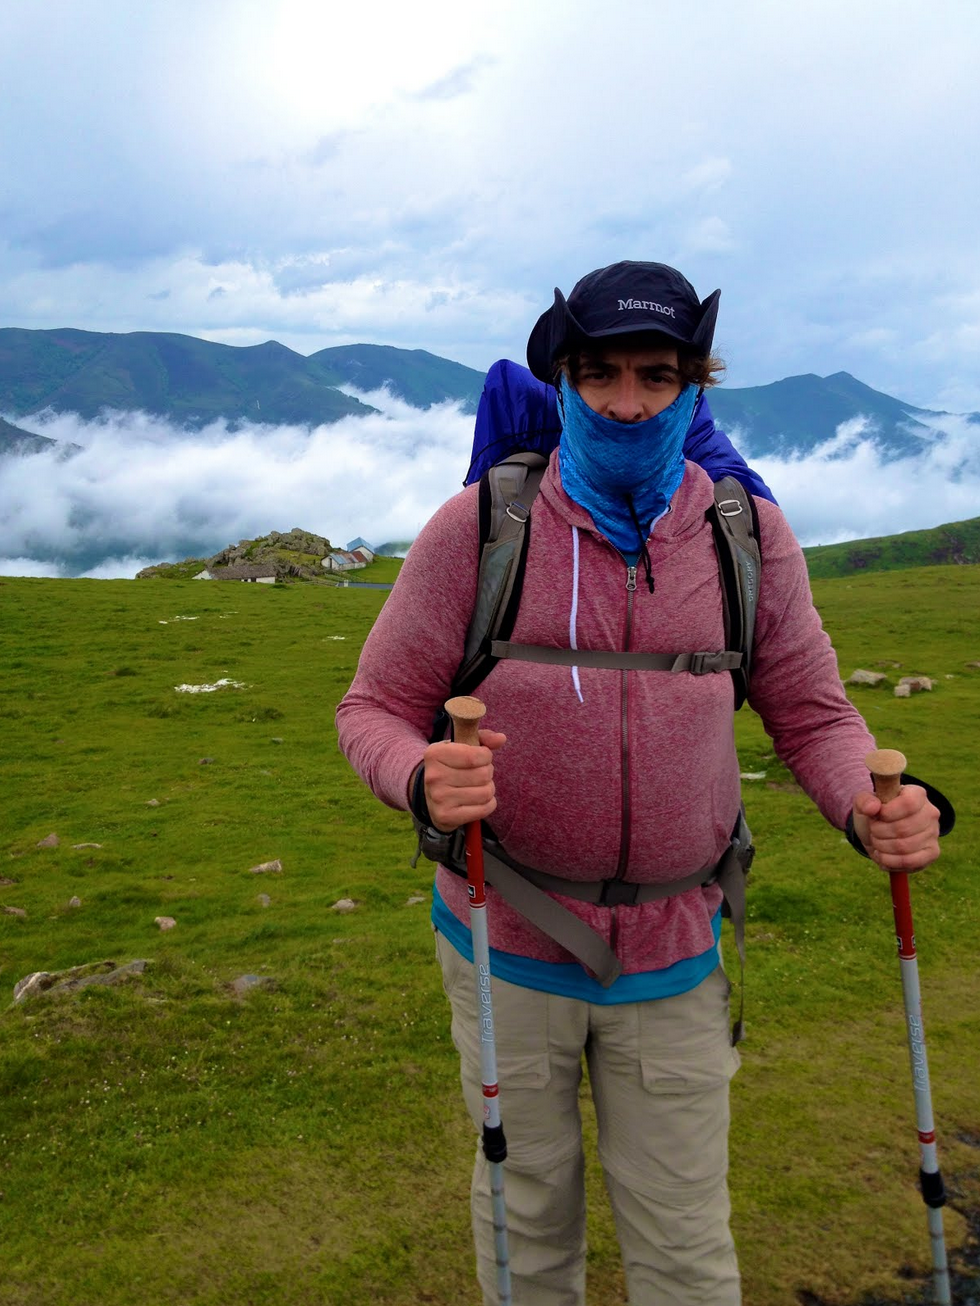 I don't always hike in alpine conditions. But when I do, I prefer Dos trekking poles.